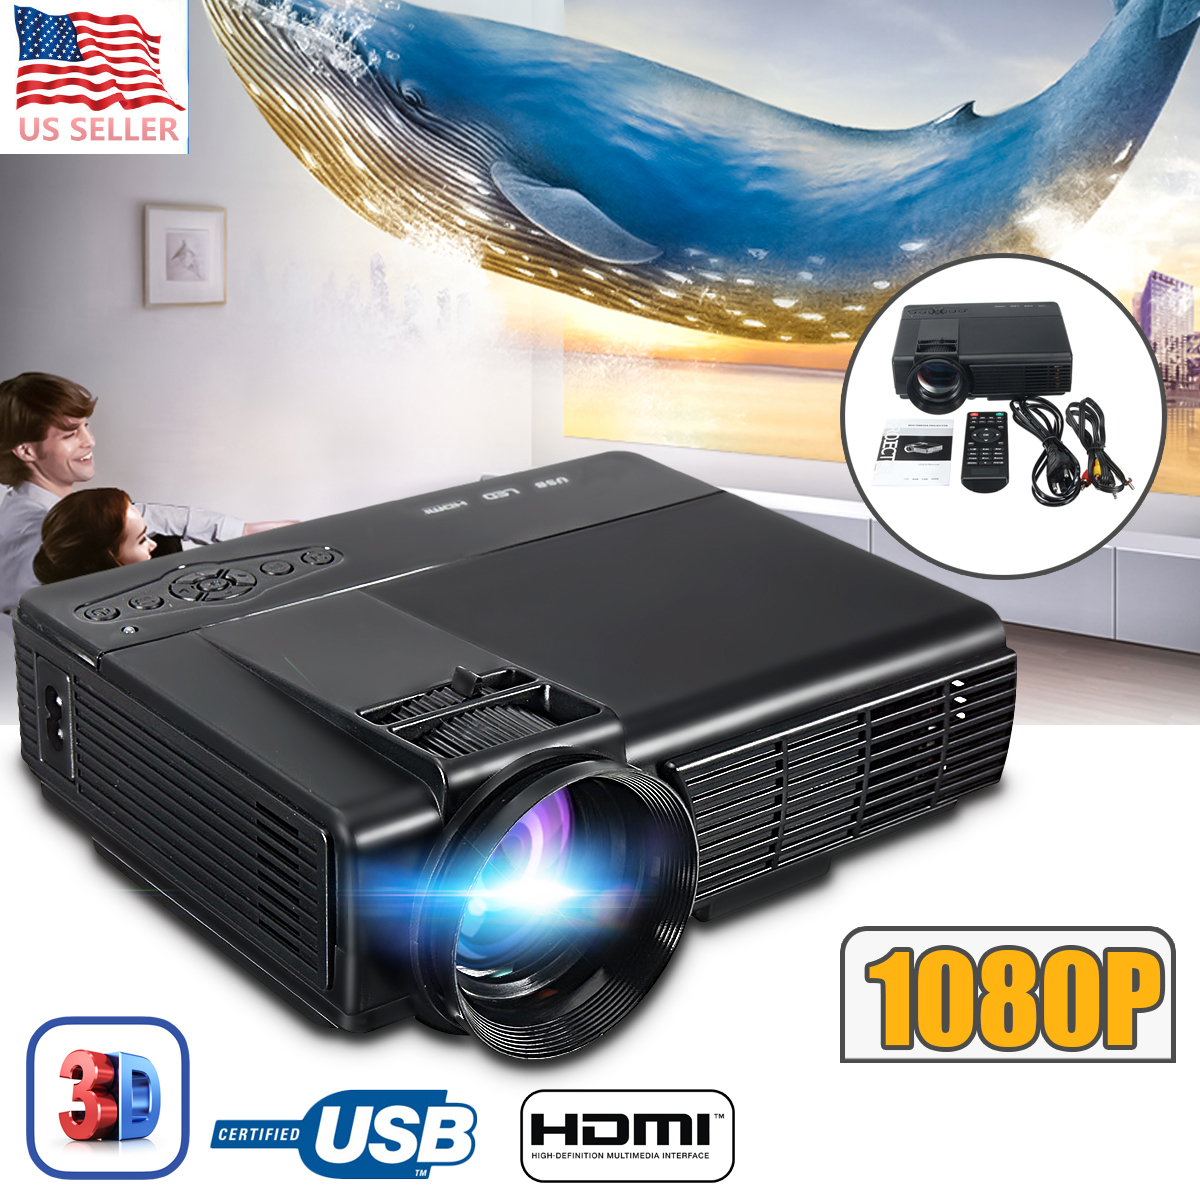 3000 Lumens 3D 1080P Projector Full HD Home Theater Multimedia VGA USB HDMI LED Projector smalto часы smalto st4g001m0011 коллекция volterra page 7